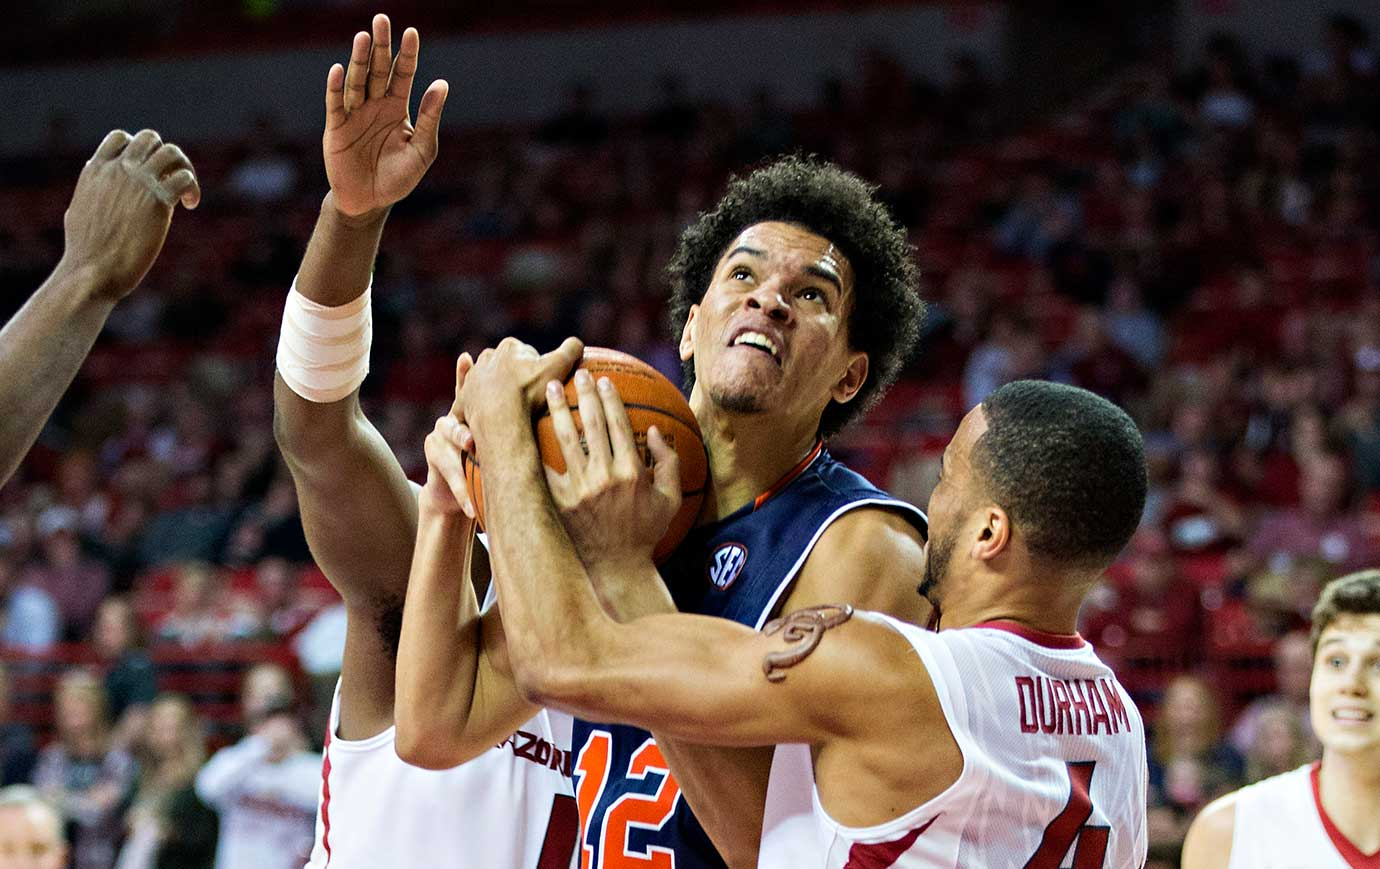 Tyler Harris of the Auburn Tigers is tied up and fouled by Jabril Durham of the Arkansas Razorbacks.